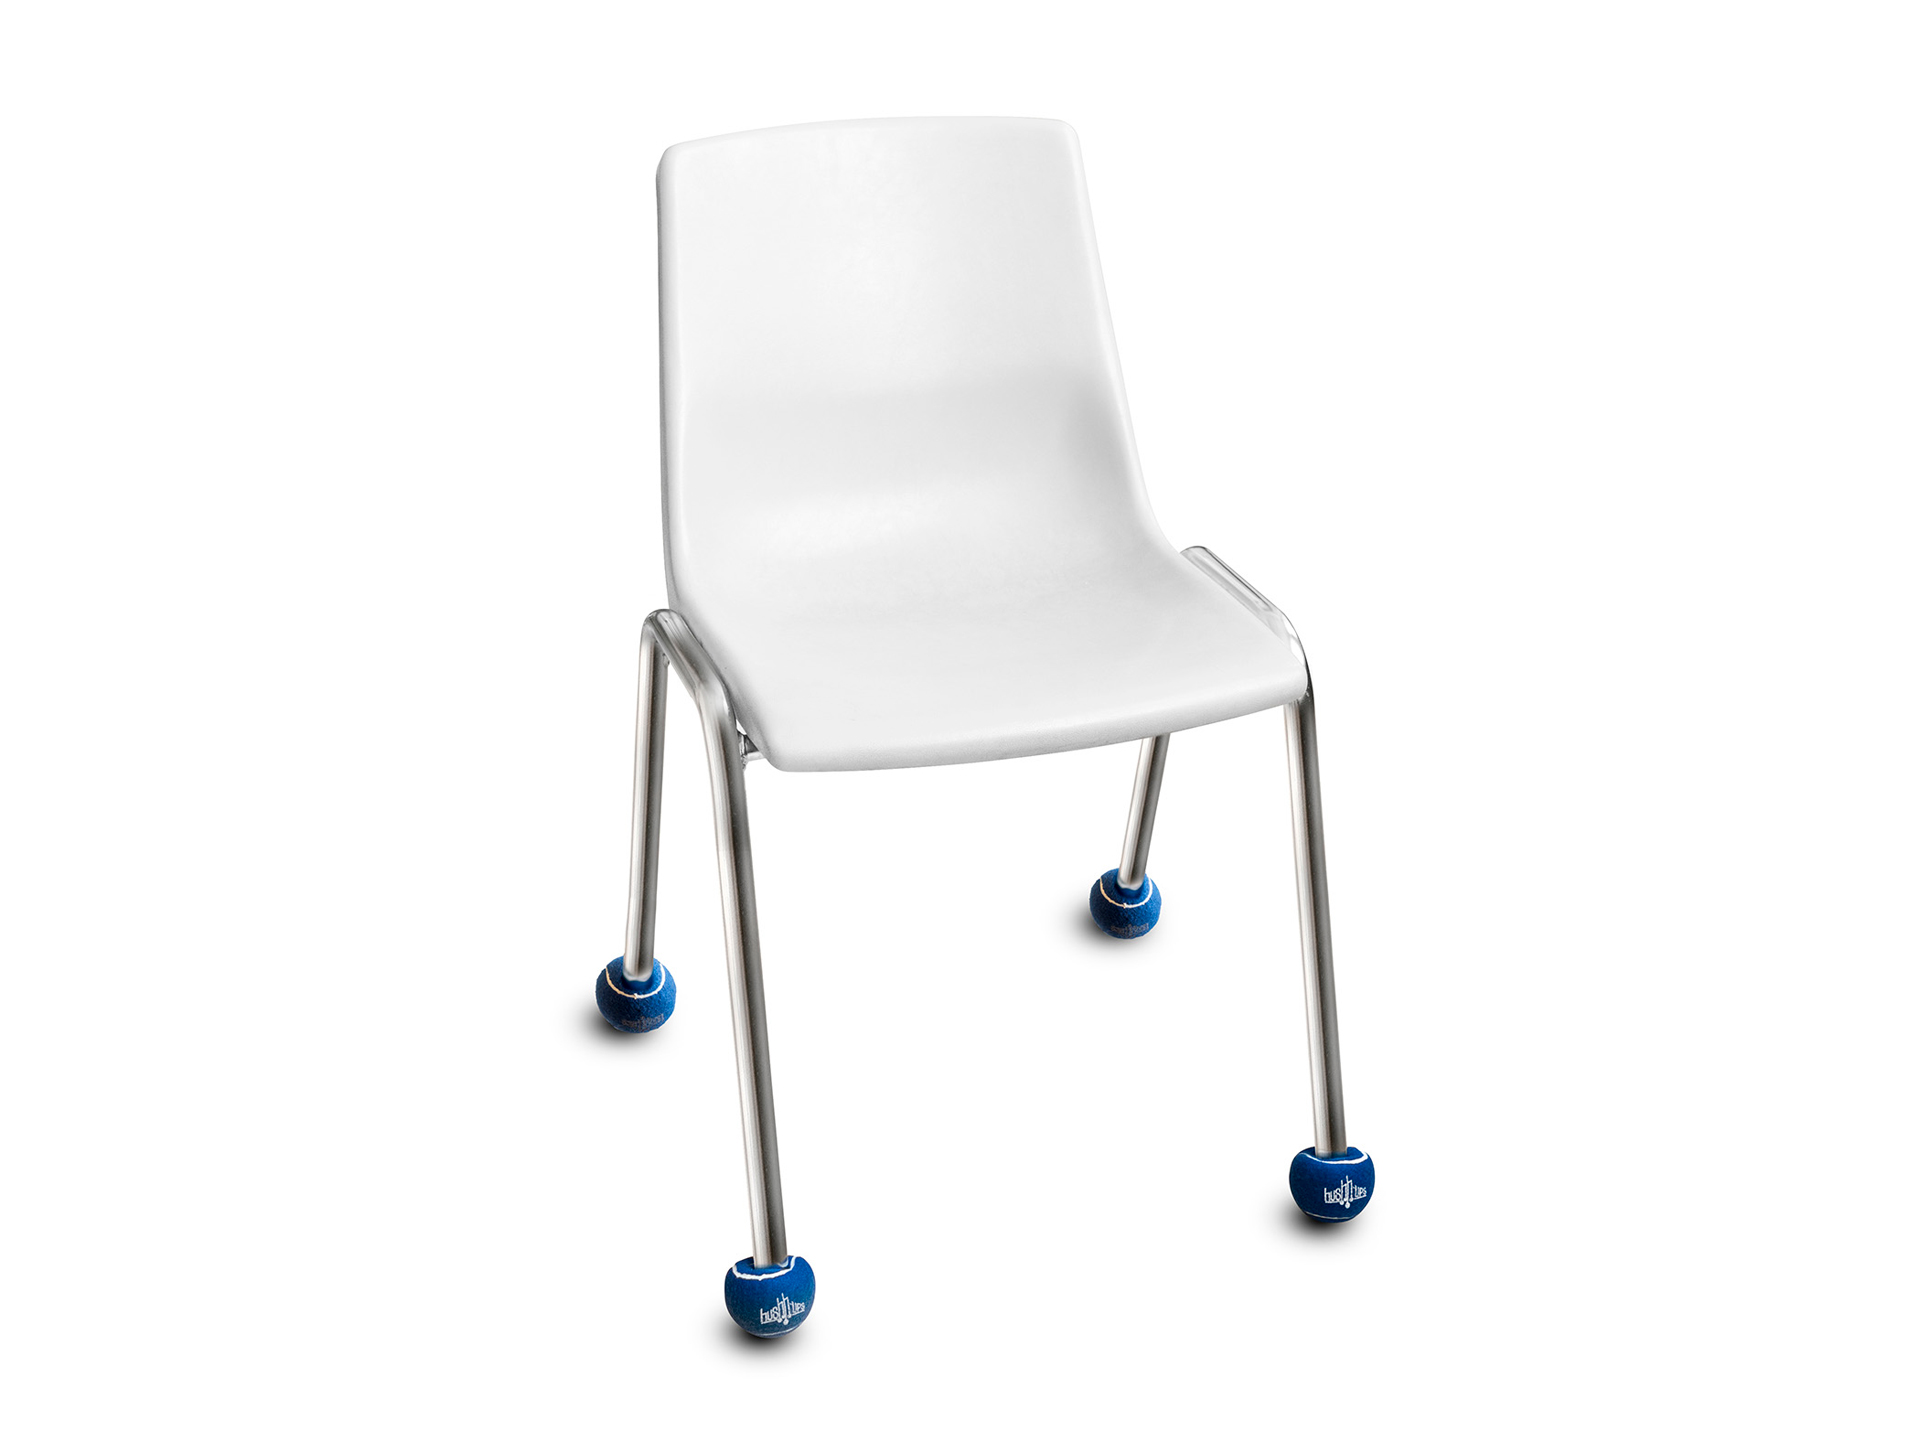 single chair with hushhups